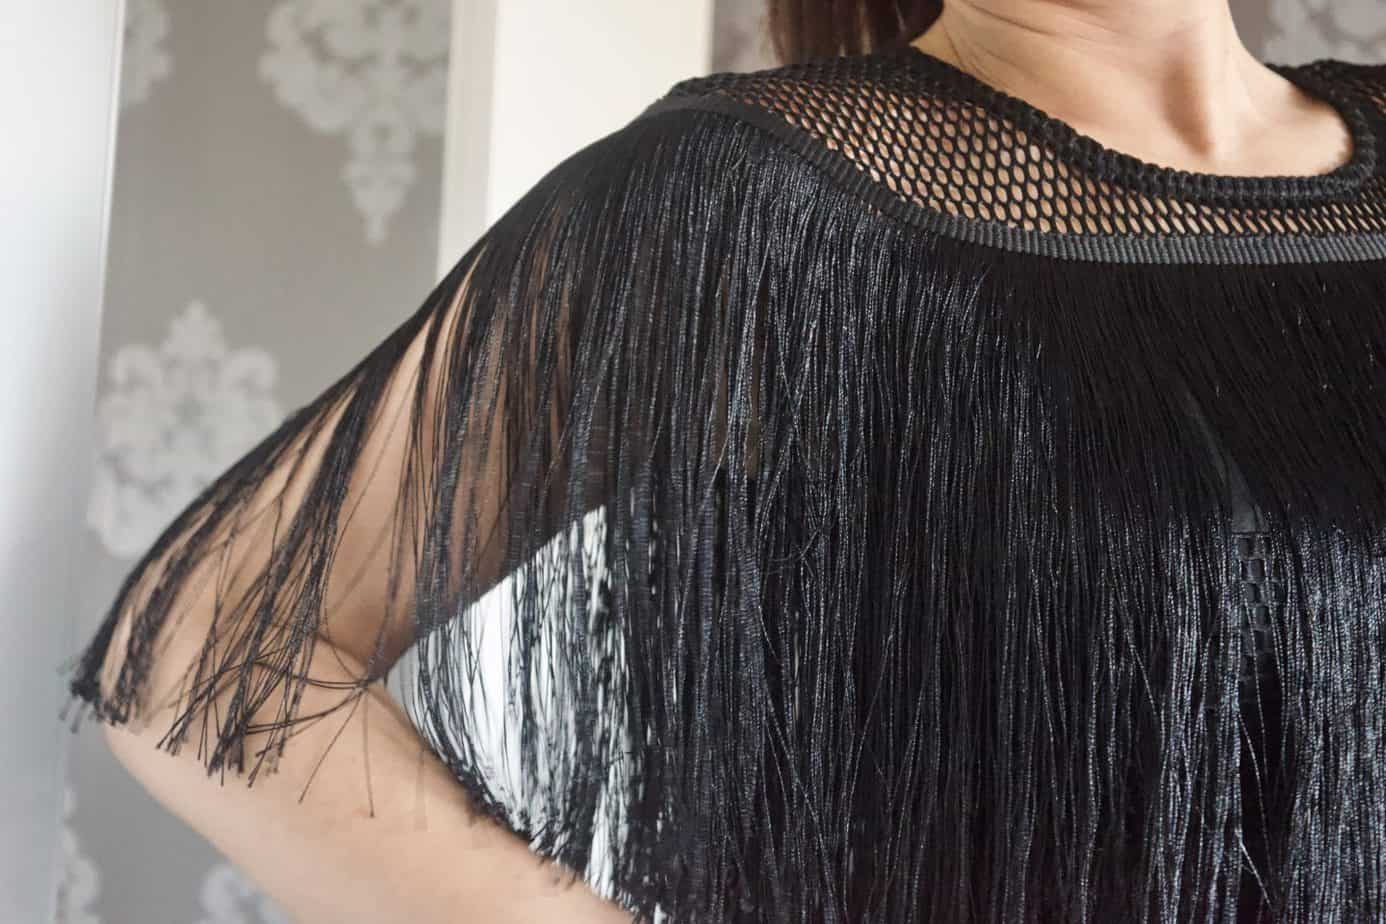 A close up of the top of the dress and tassel detail